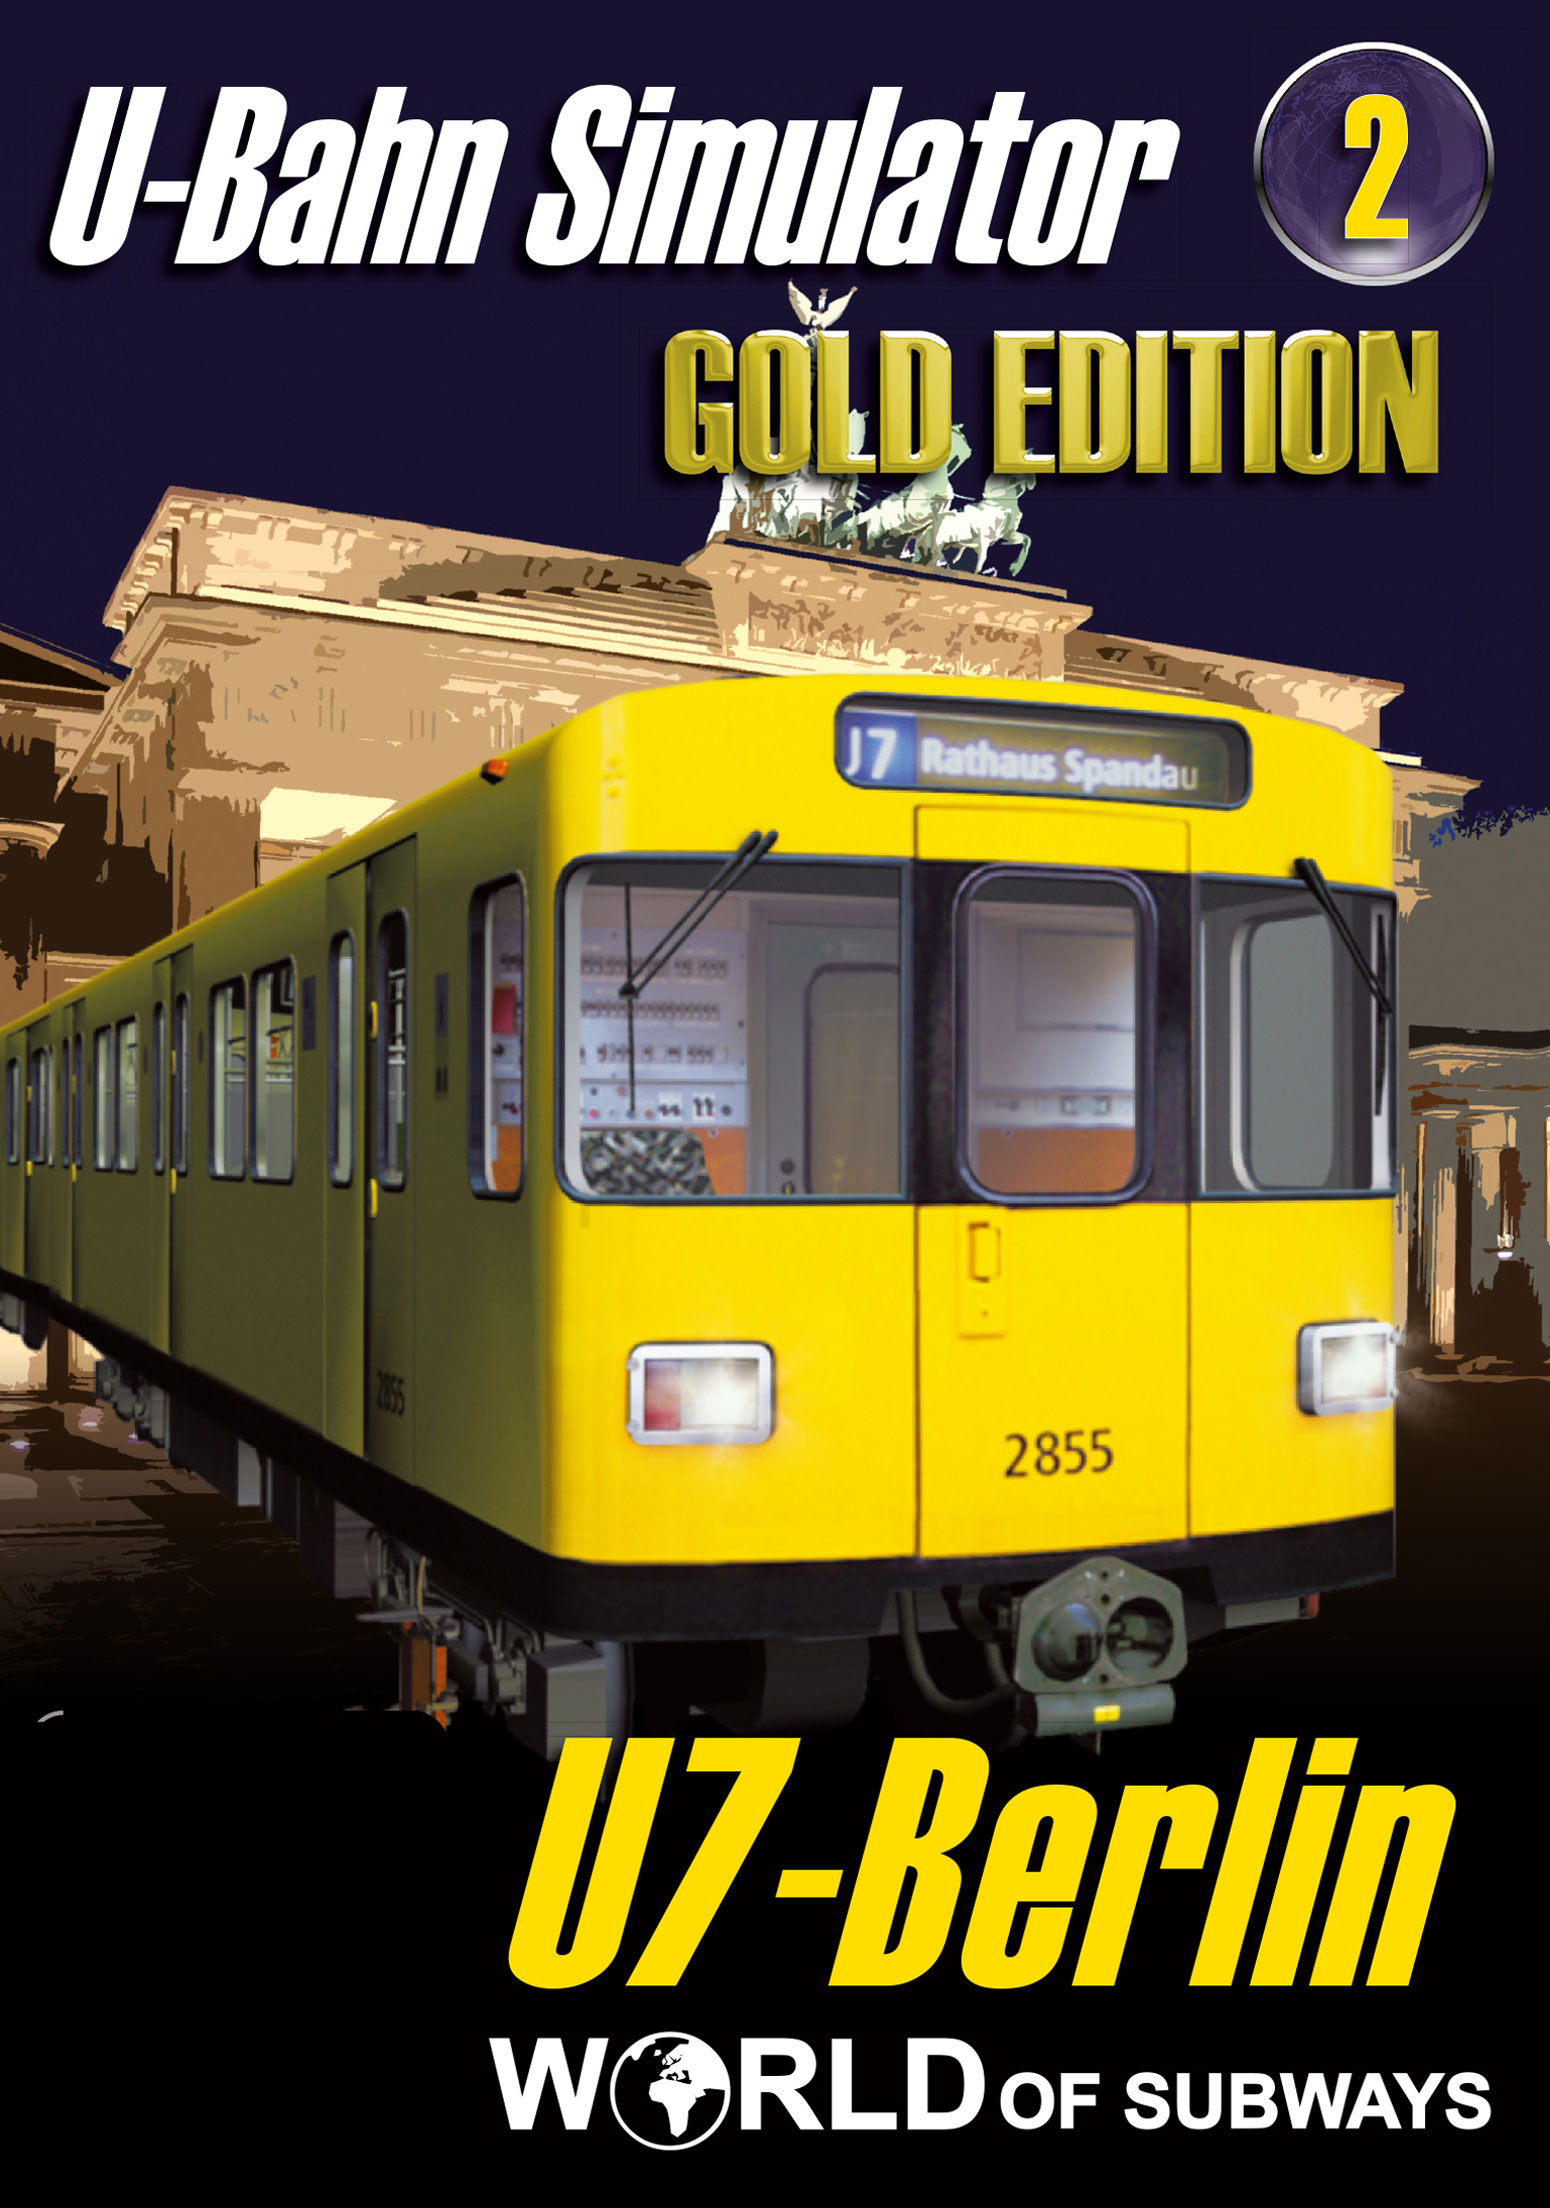 World of Subways Vol. 2 - Berlin U7 - GOLD EDITION [PC Code - Steam]